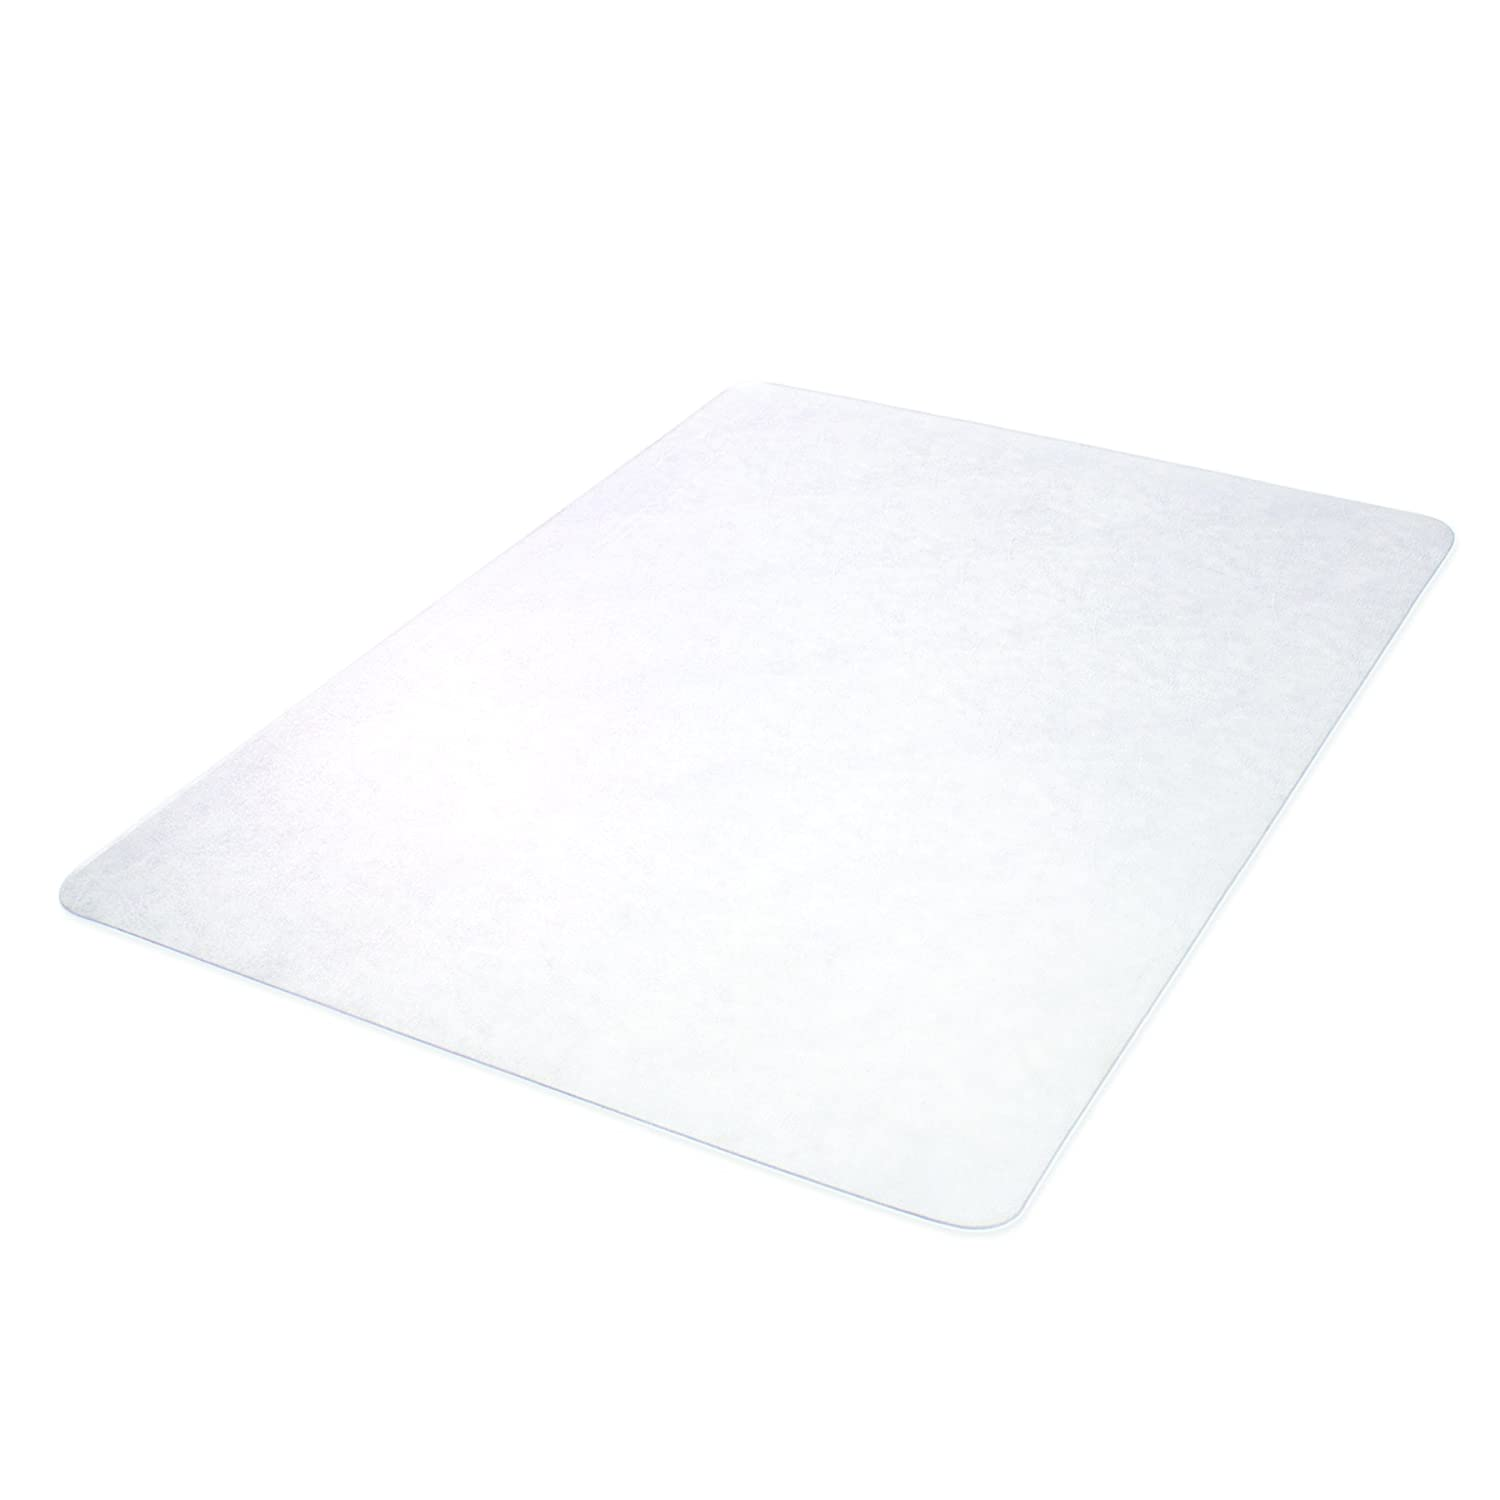 Deflecto SuperMat Clear Chair Mat, Hard Floor Use, Rectangle With Lip, Beveled Edge, 36 x 48 Inches CM24143